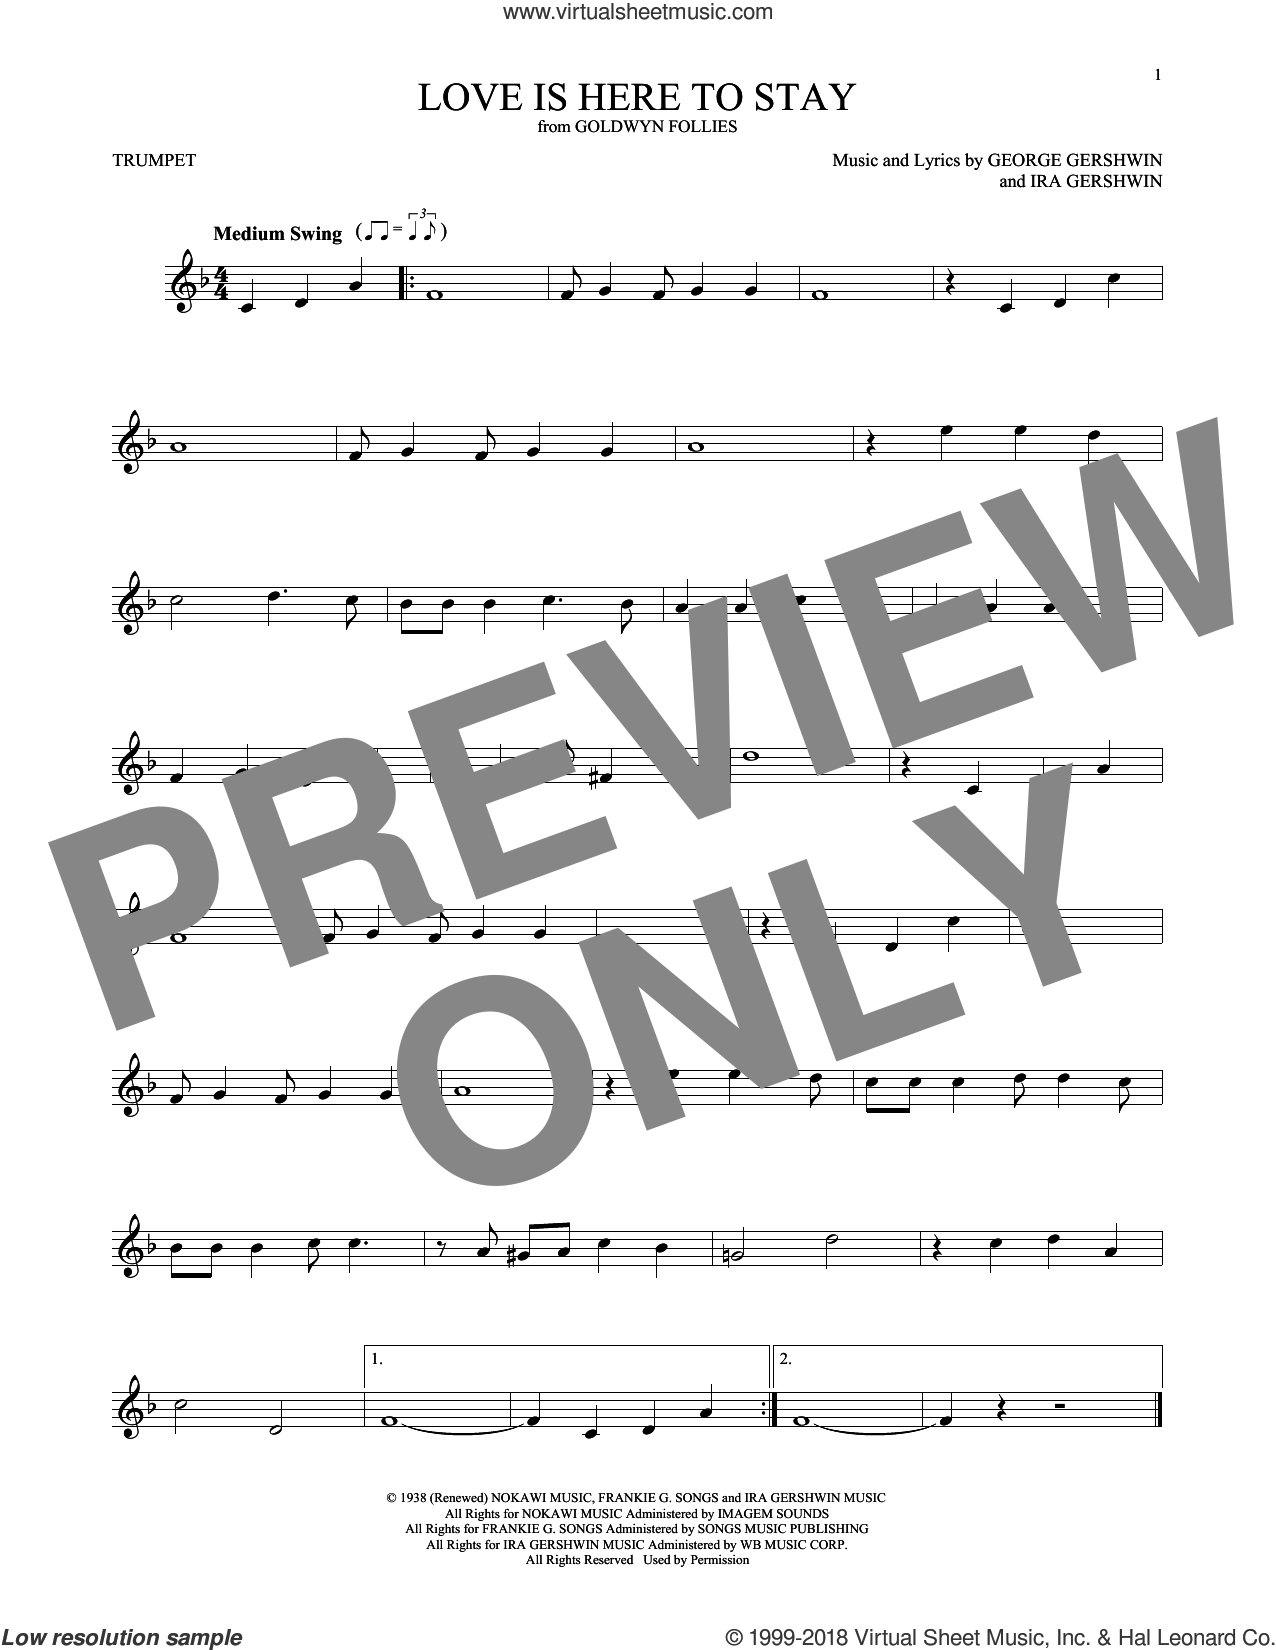 Love Is Here To Stay sheet music for trumpet solo by George Gershwin and Ira Gershwin, intermediate skill level